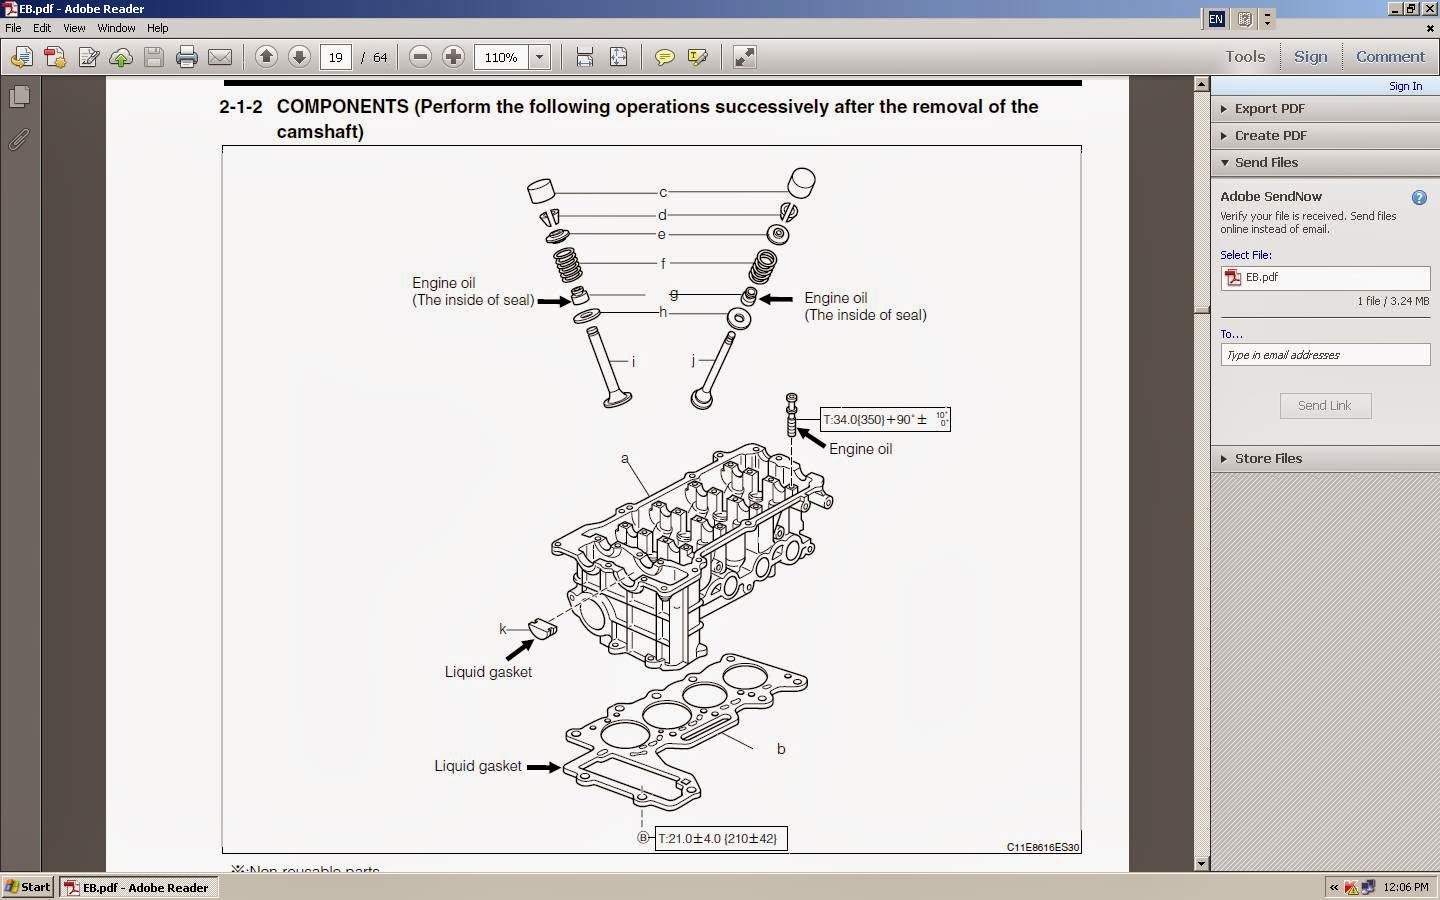 Wiring Diagram Daihatsu Jb Schematic Diagrams Gem Car Schematics 3 Explained Kp Gasket Jl